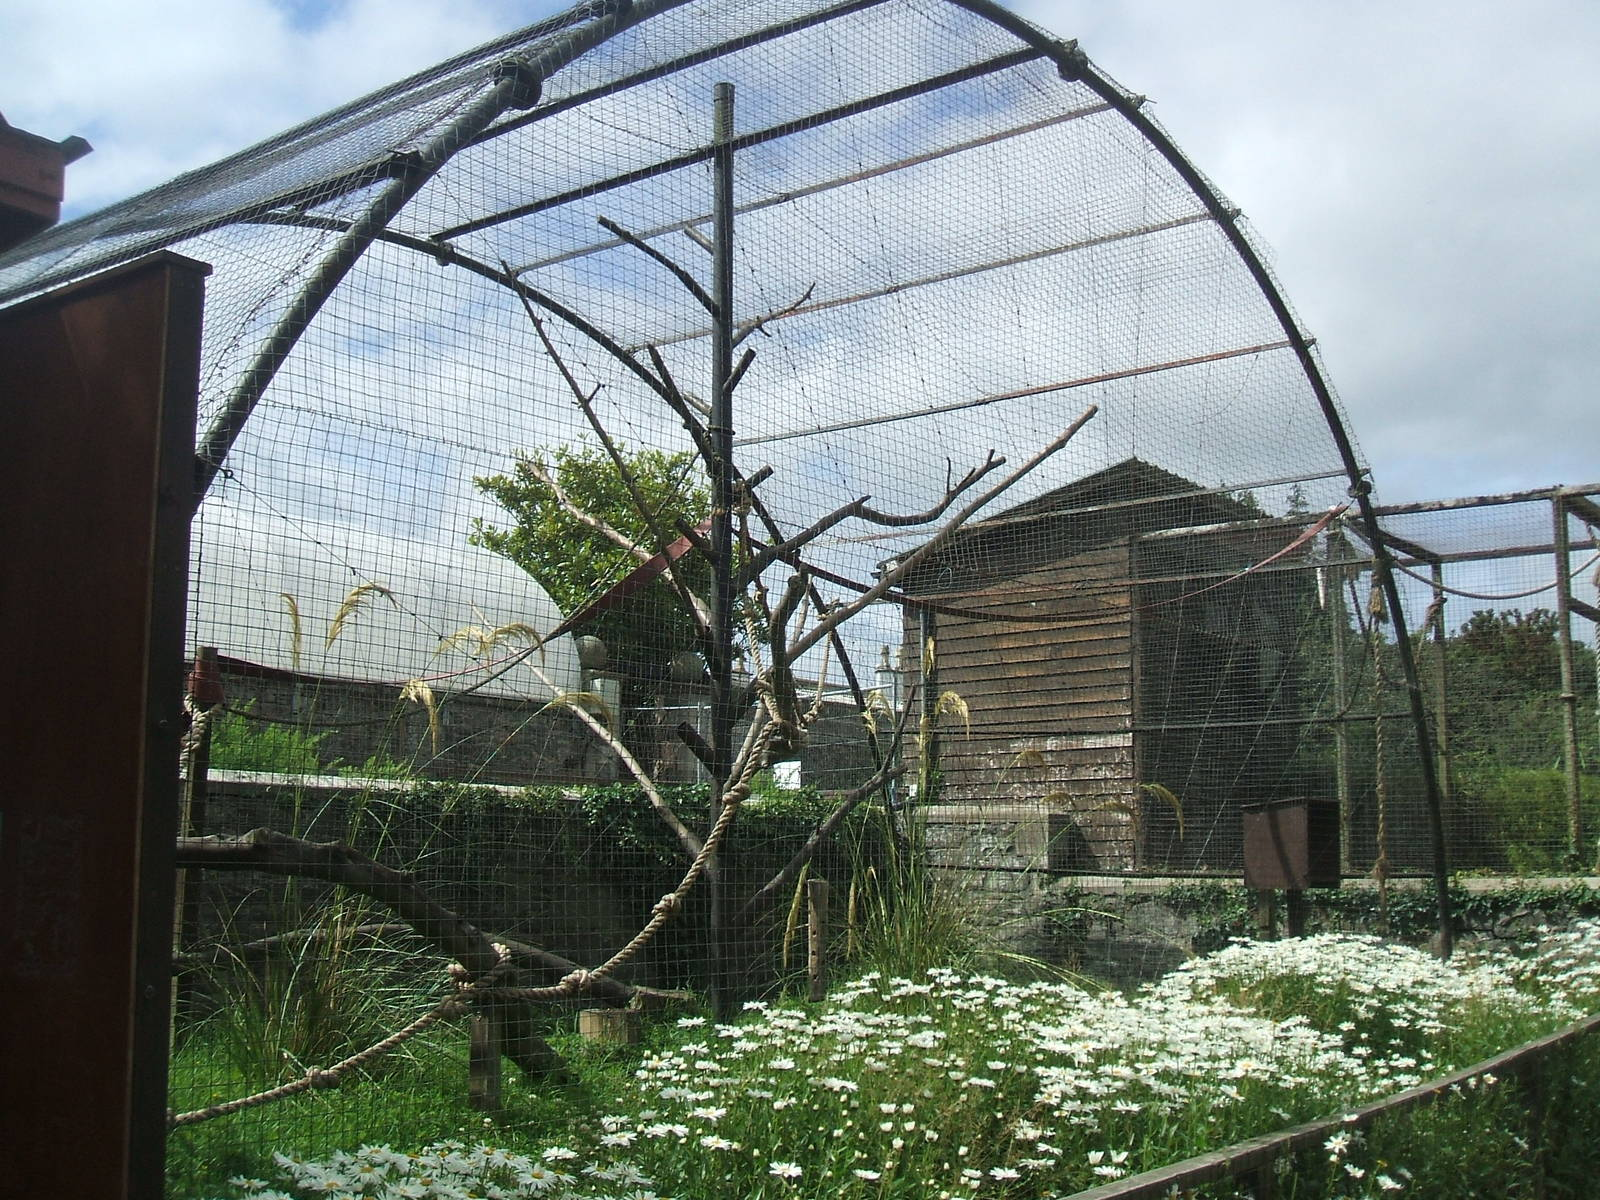 Charlotte On The Cheap >> Spider Monkey enclosure - ZooChat